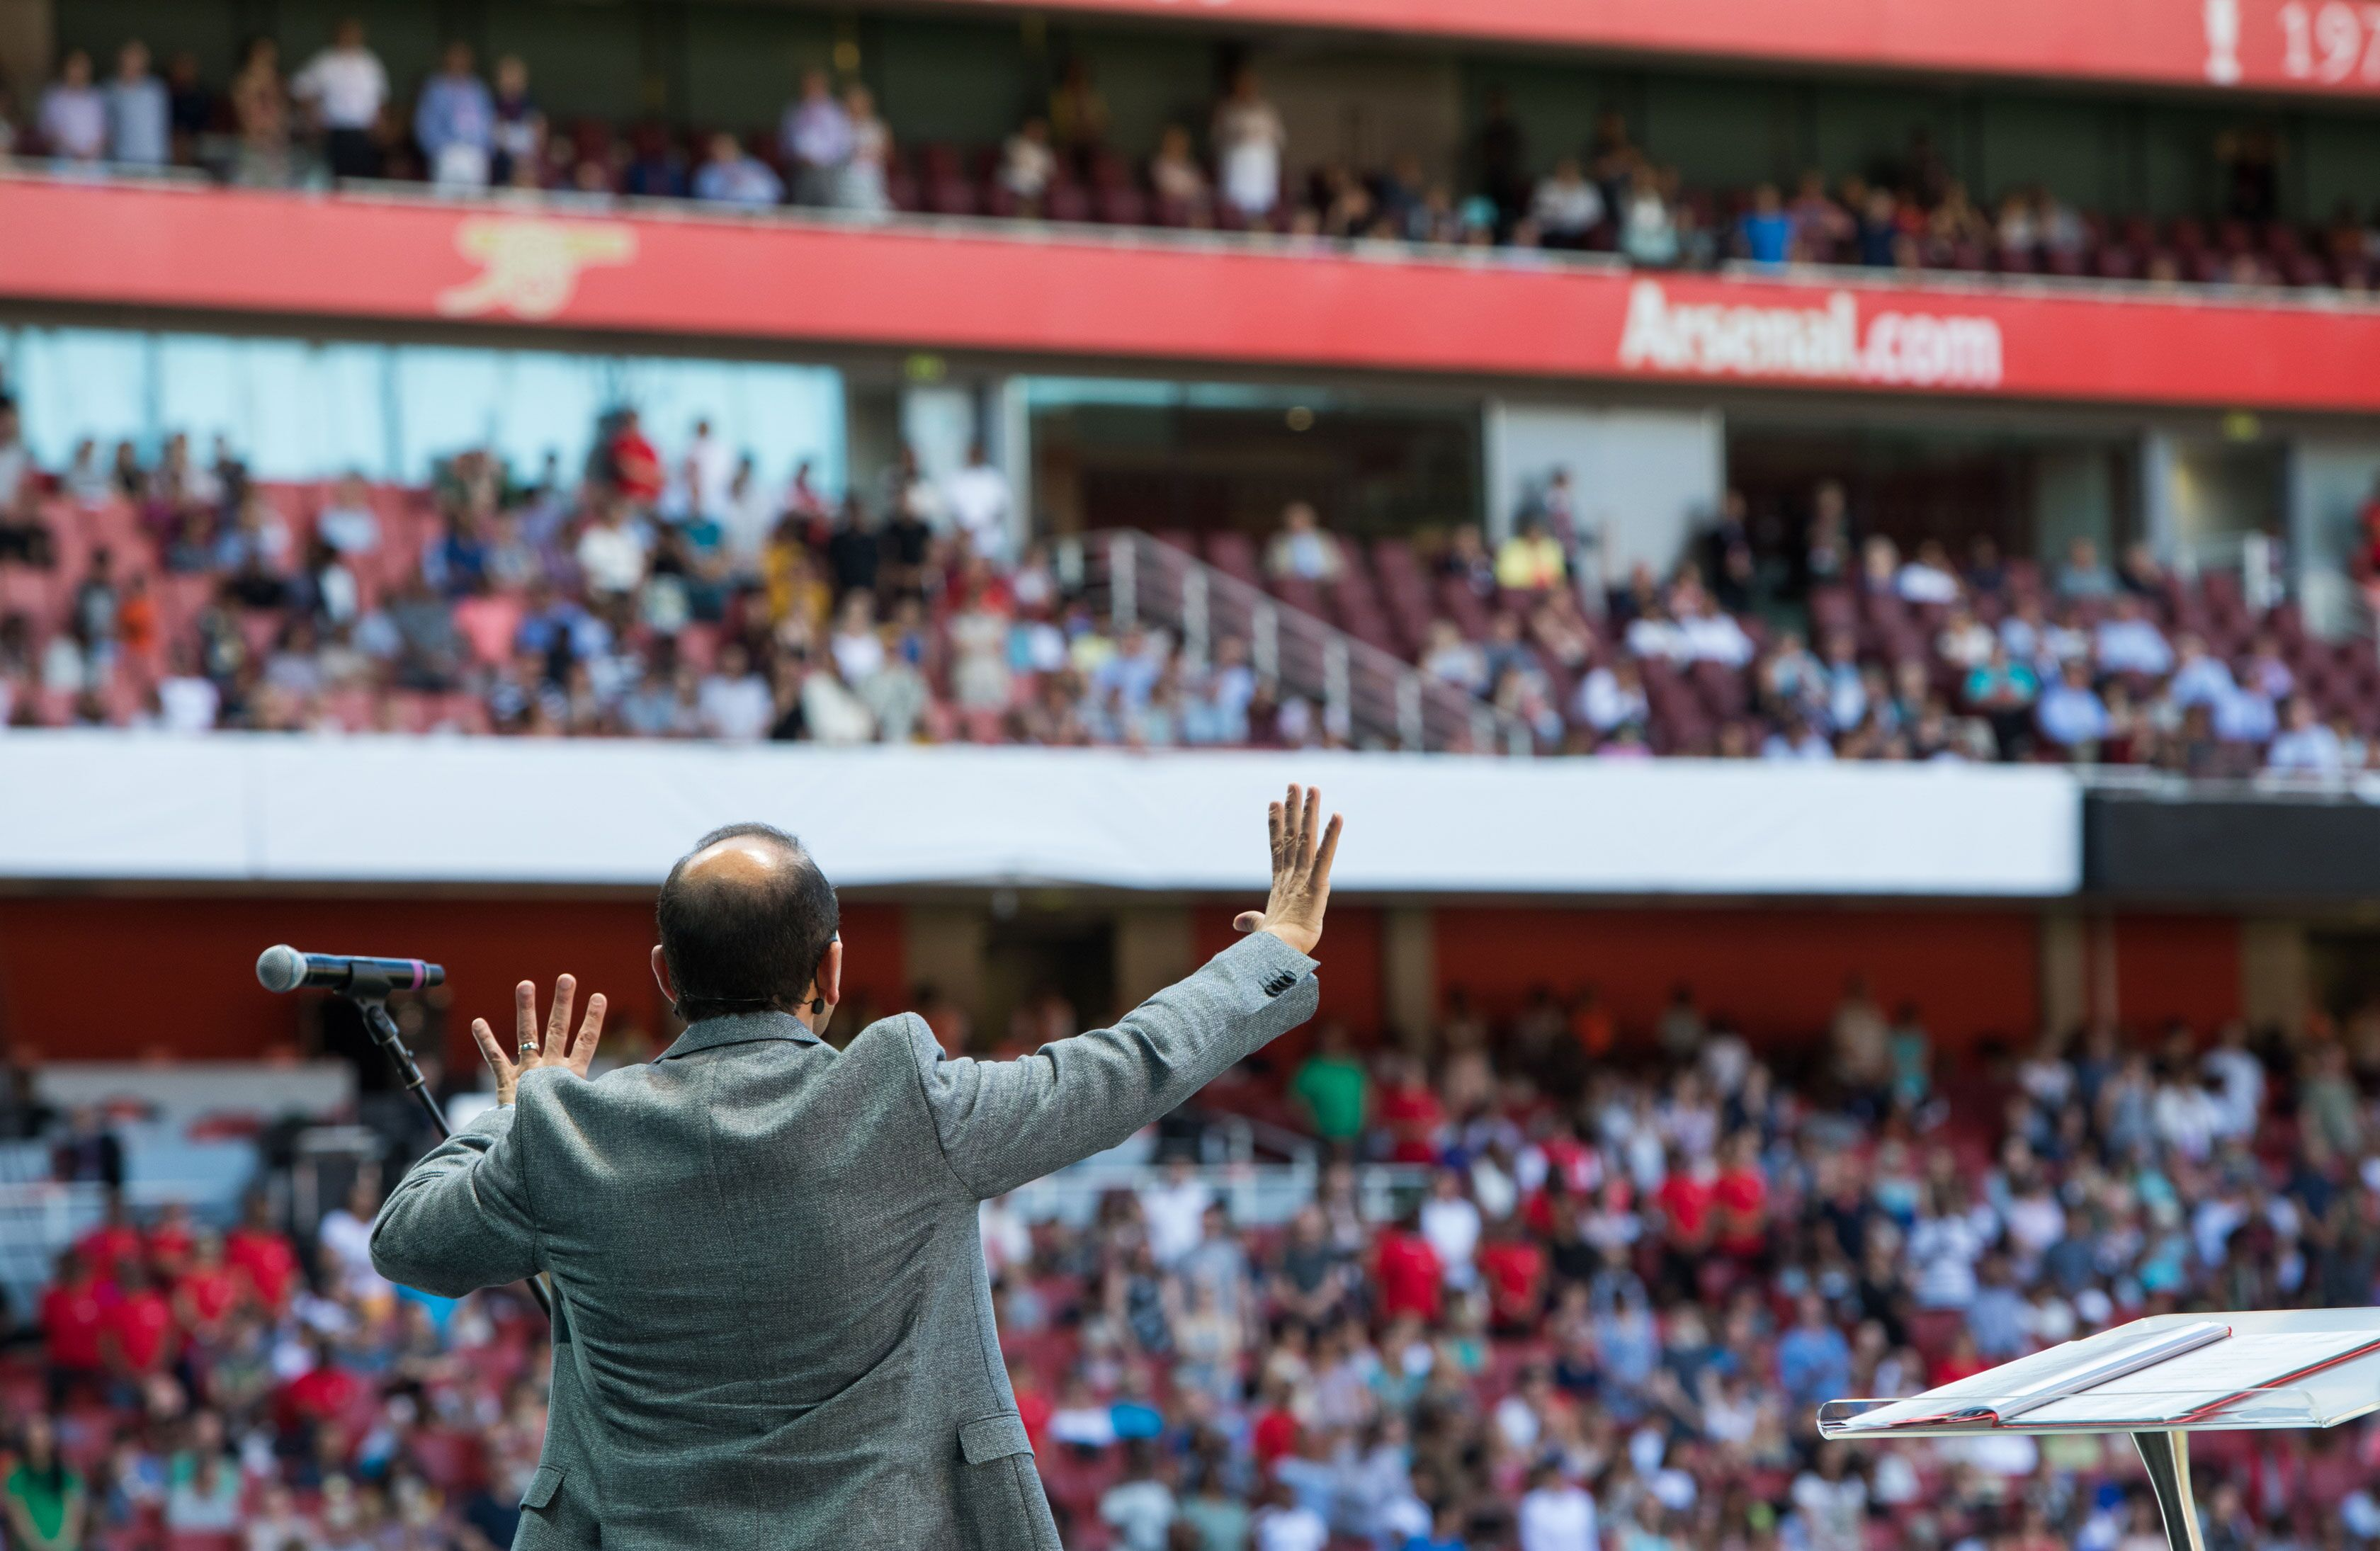 The scene at Arsenal's Emirates Stadium last June